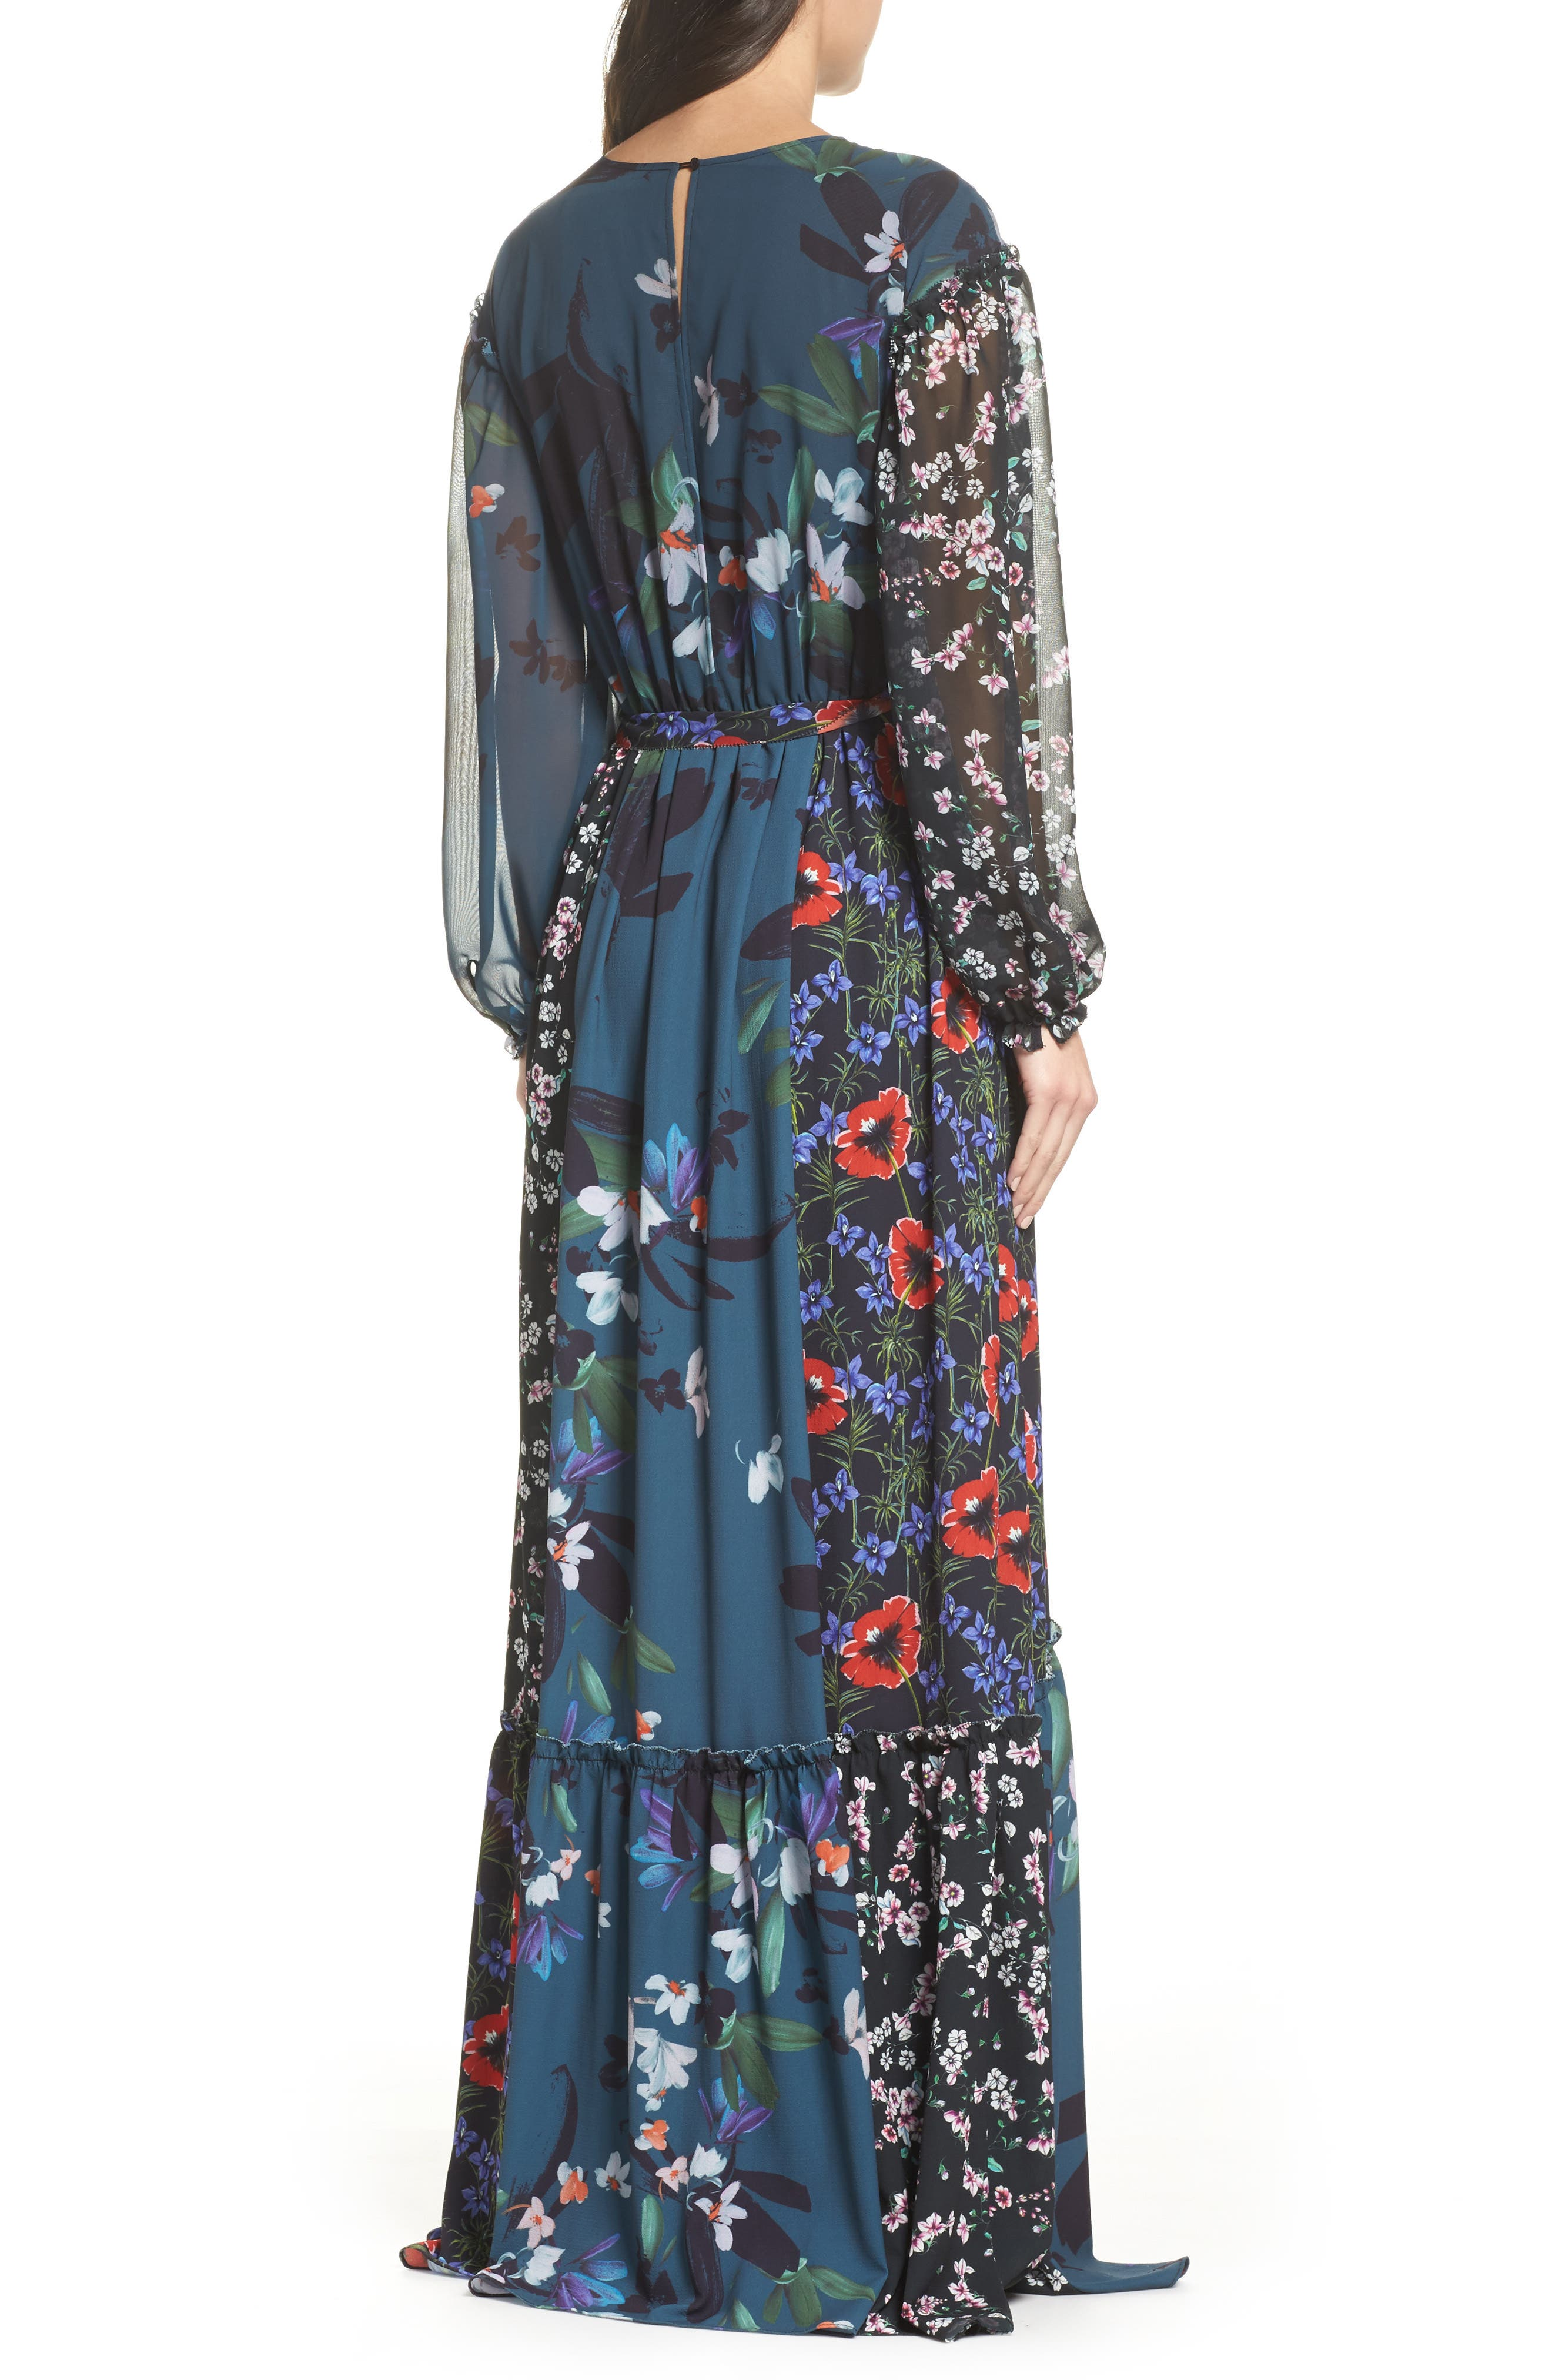 Celia Mix Floral Maxi Dress,                             Alternate thumbnail 2, color,                             Deep Teal Multi